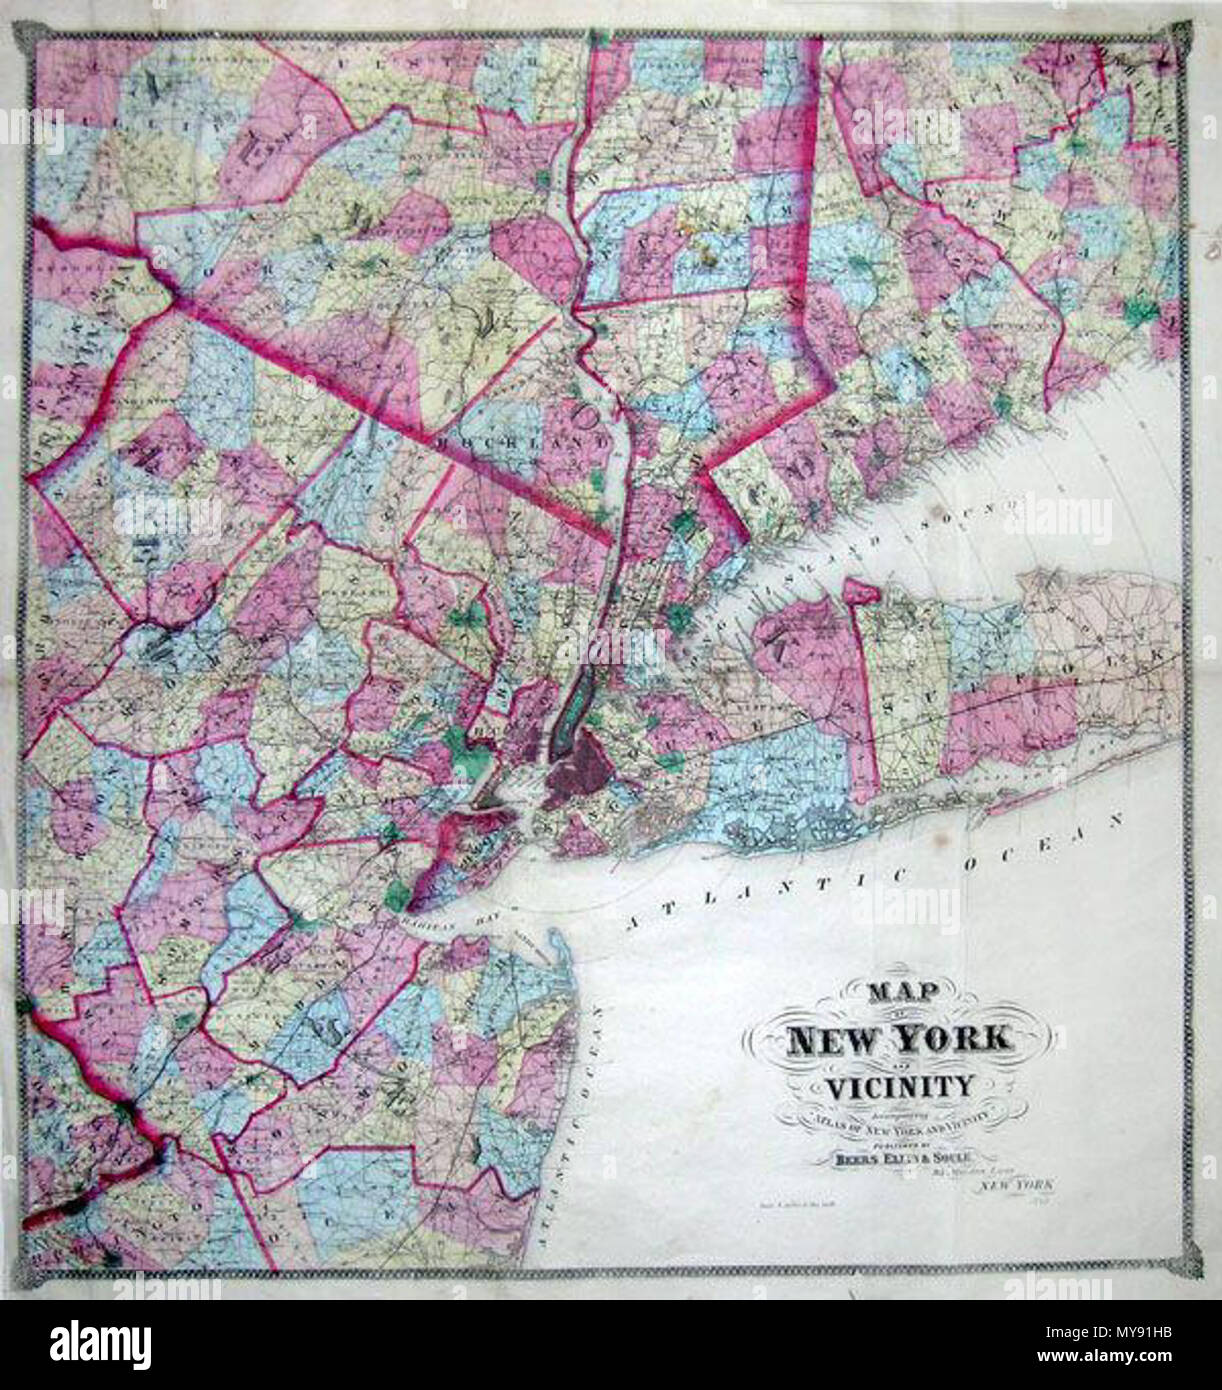 Map of New York and Vicinity. English: A scarce large format map of Large Map Of New York City on large map of santa barbara, large map of comal county, large map of calif, large map of the bay area, large map of tampa area, large map of dc, large map of taipei, large map of the south, large map of cupertino, large map of philadelphia, large map of niagra falls, large map of grand canyon, large map of galveston, large map of northern new jersey, large map of staten island, large map of northern ca, large map of portland, large map of hudson river, large map of las vegas nevada, large map of north sea,